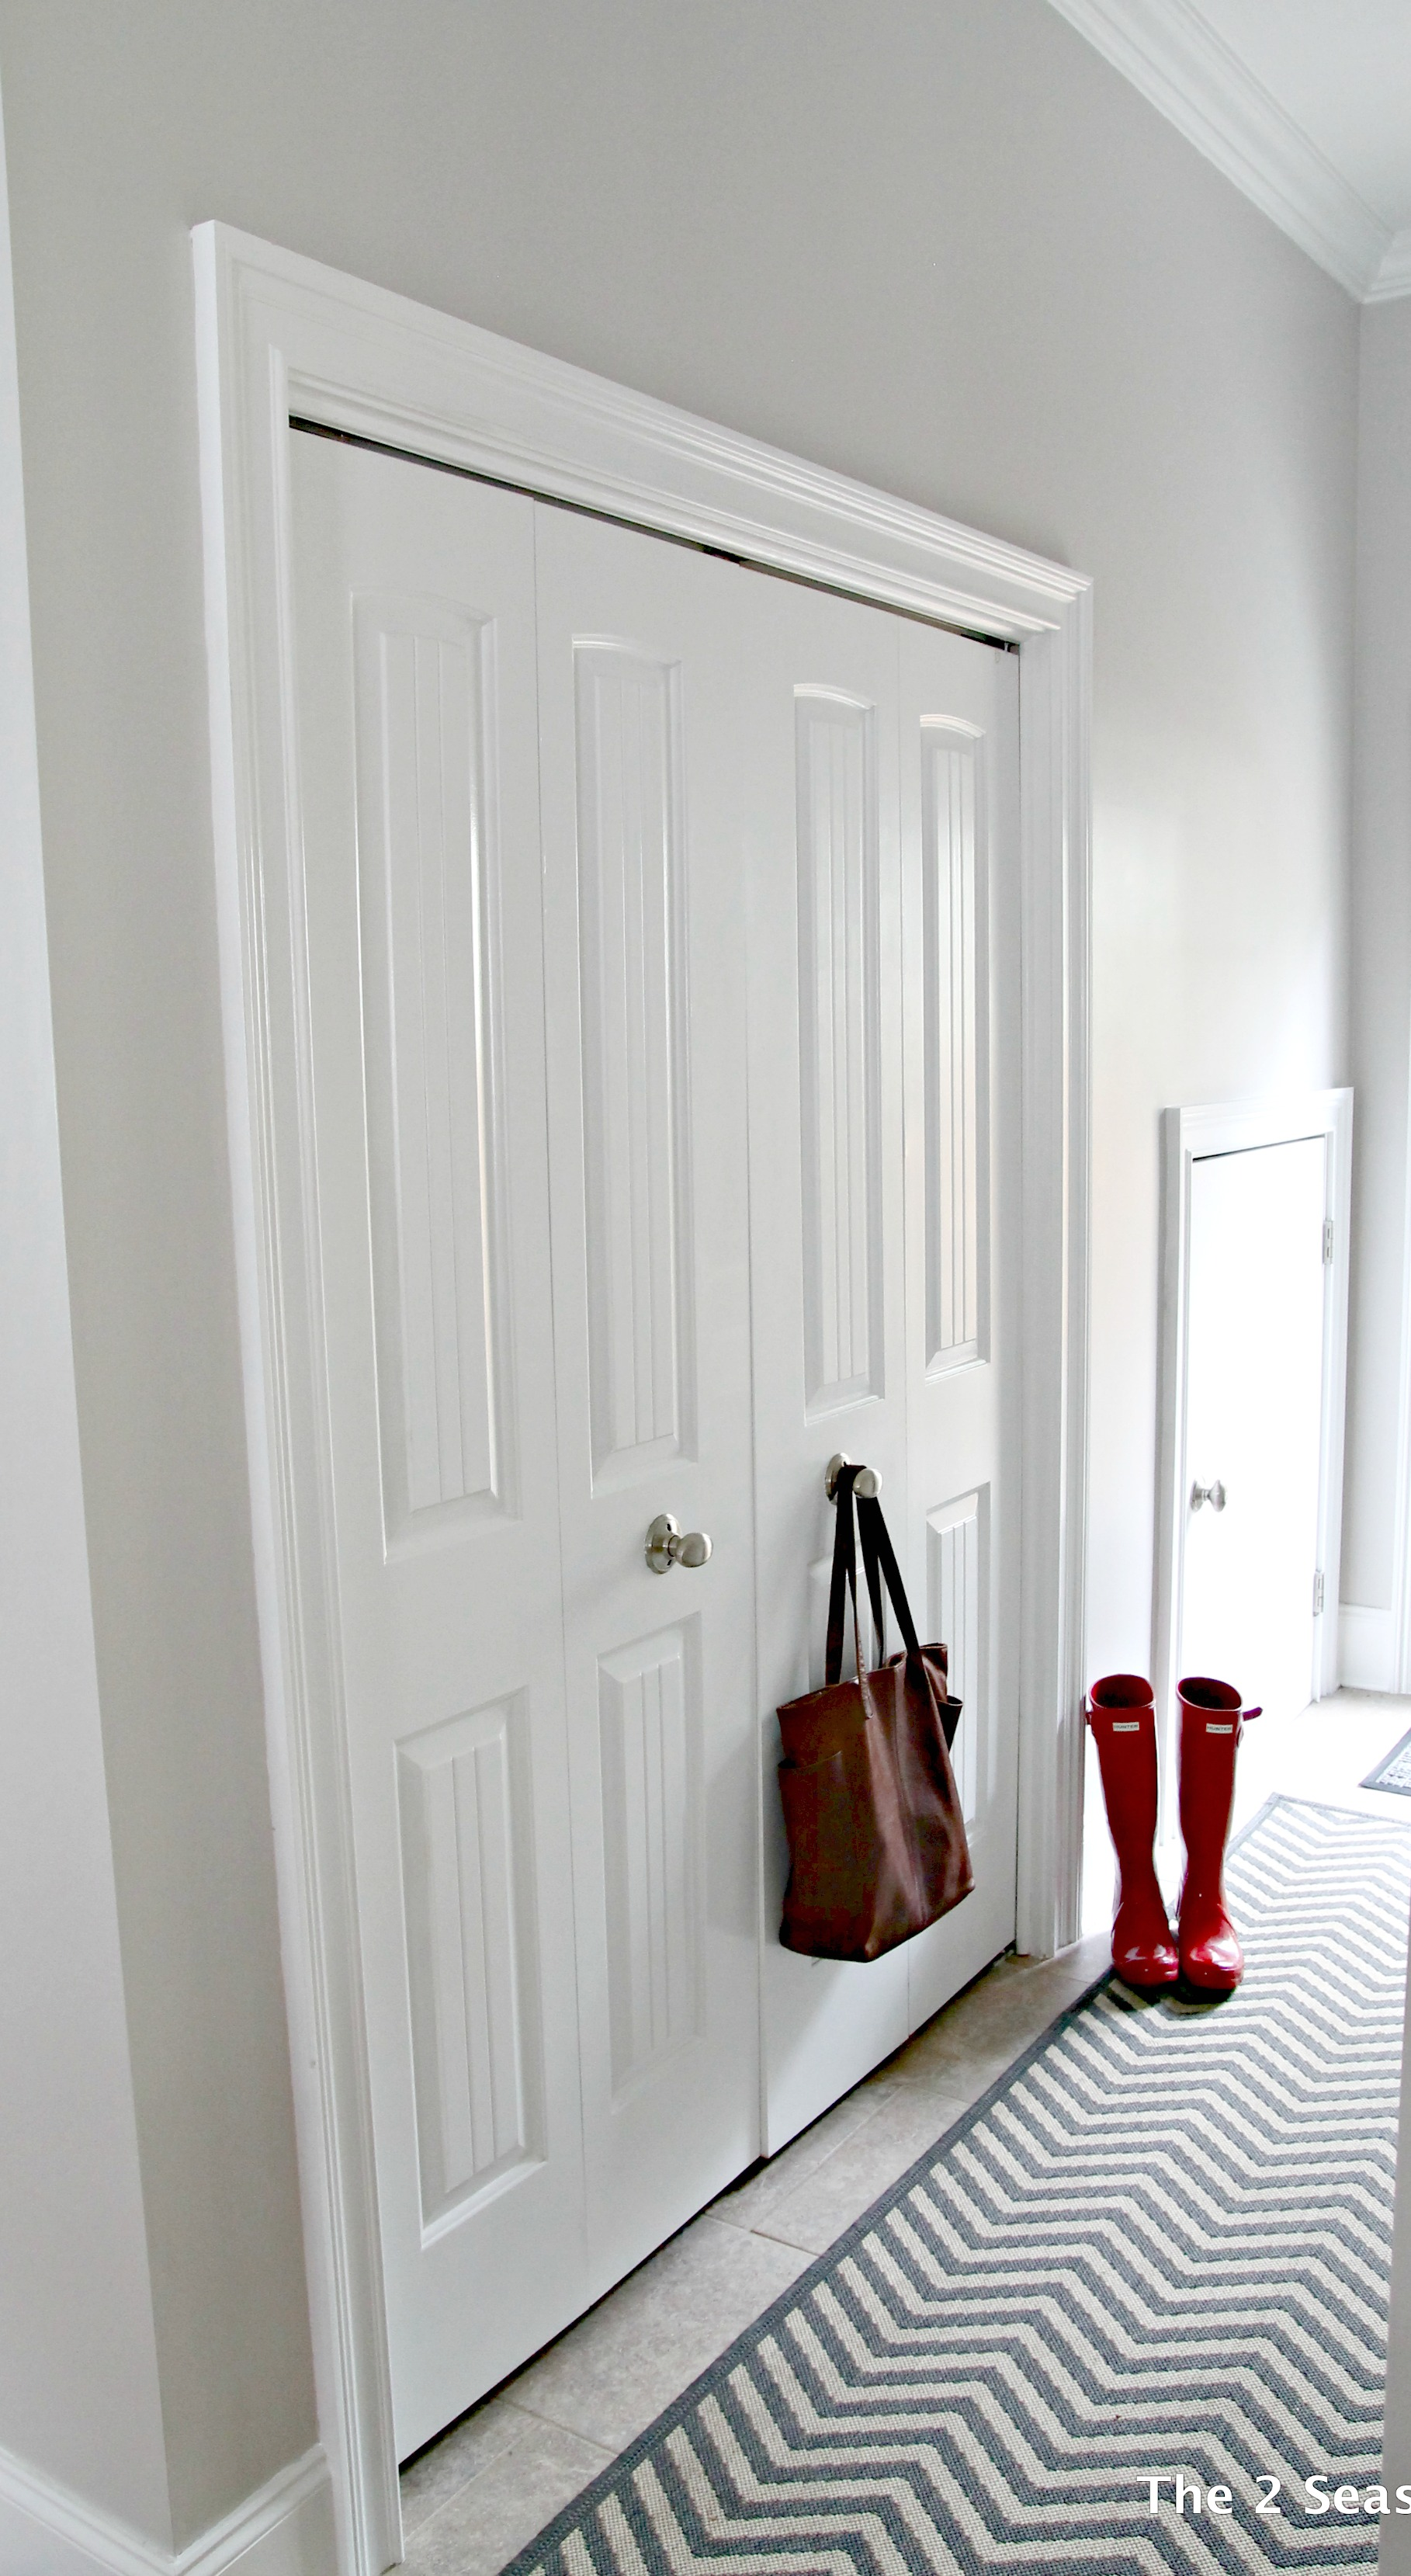 How to Turn Bi-Fold Doors into French Doors